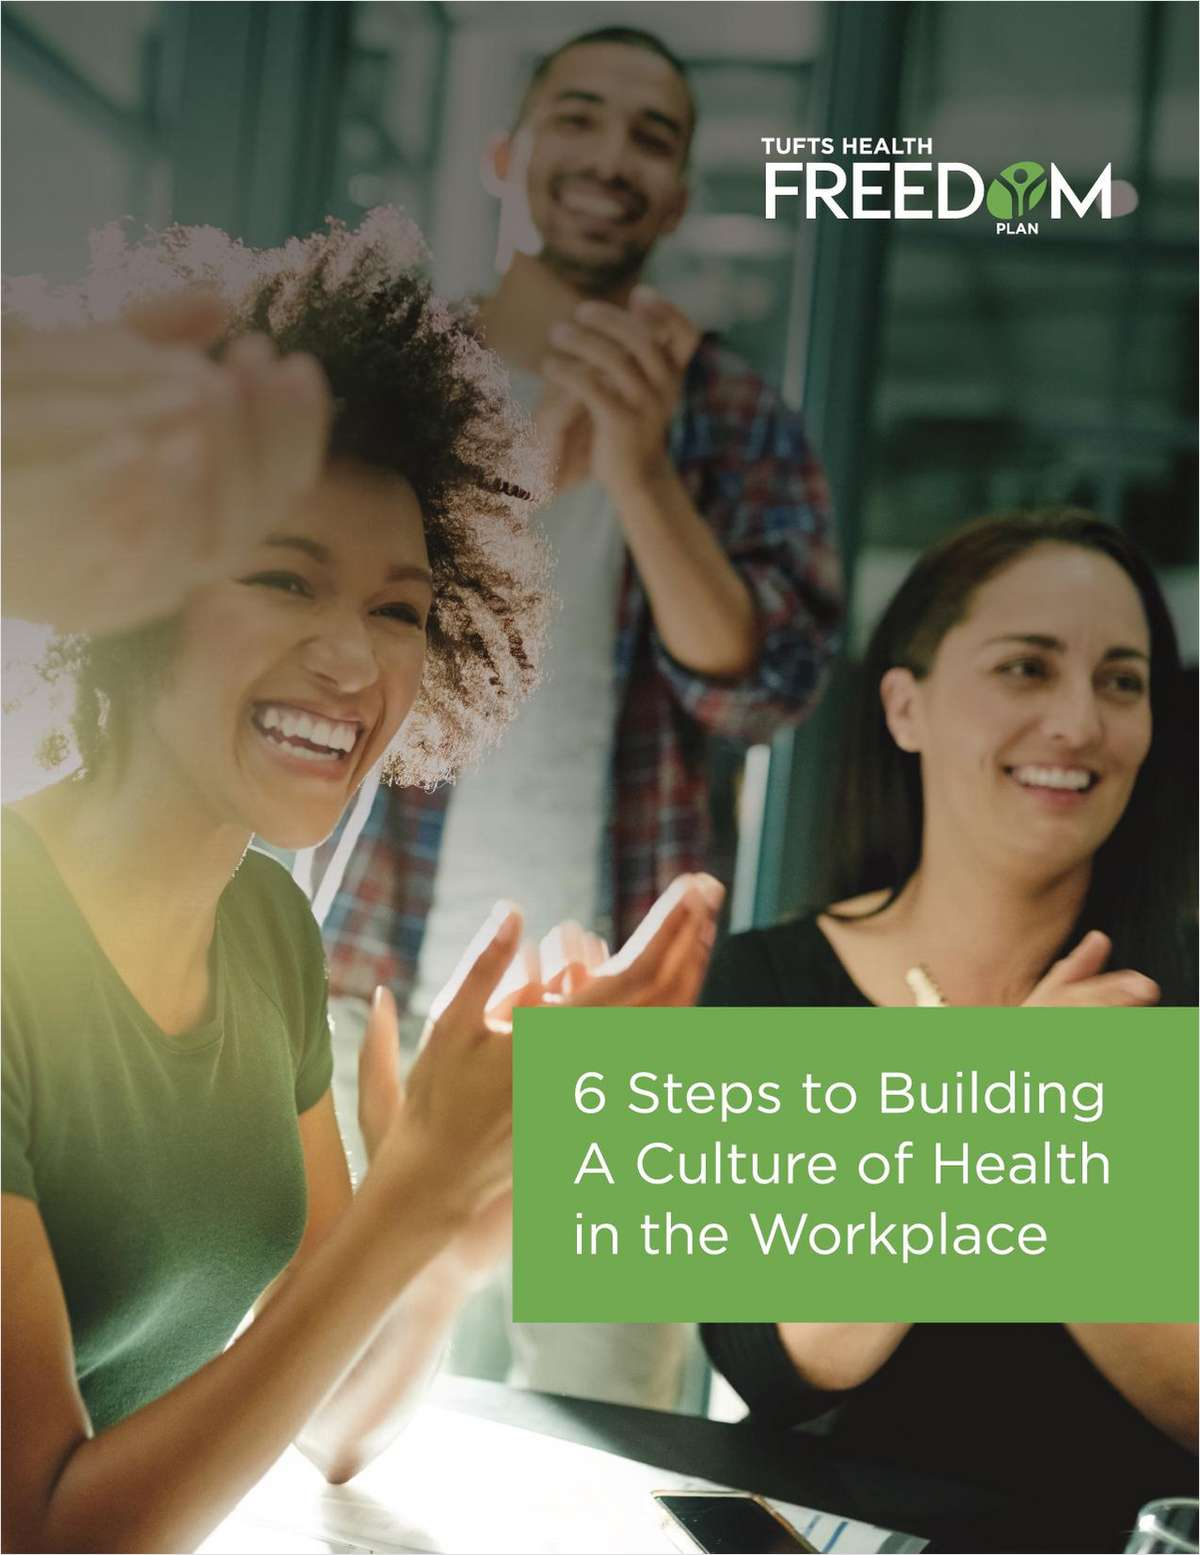 6 Steps to Building a Culture of Health in the Workplace